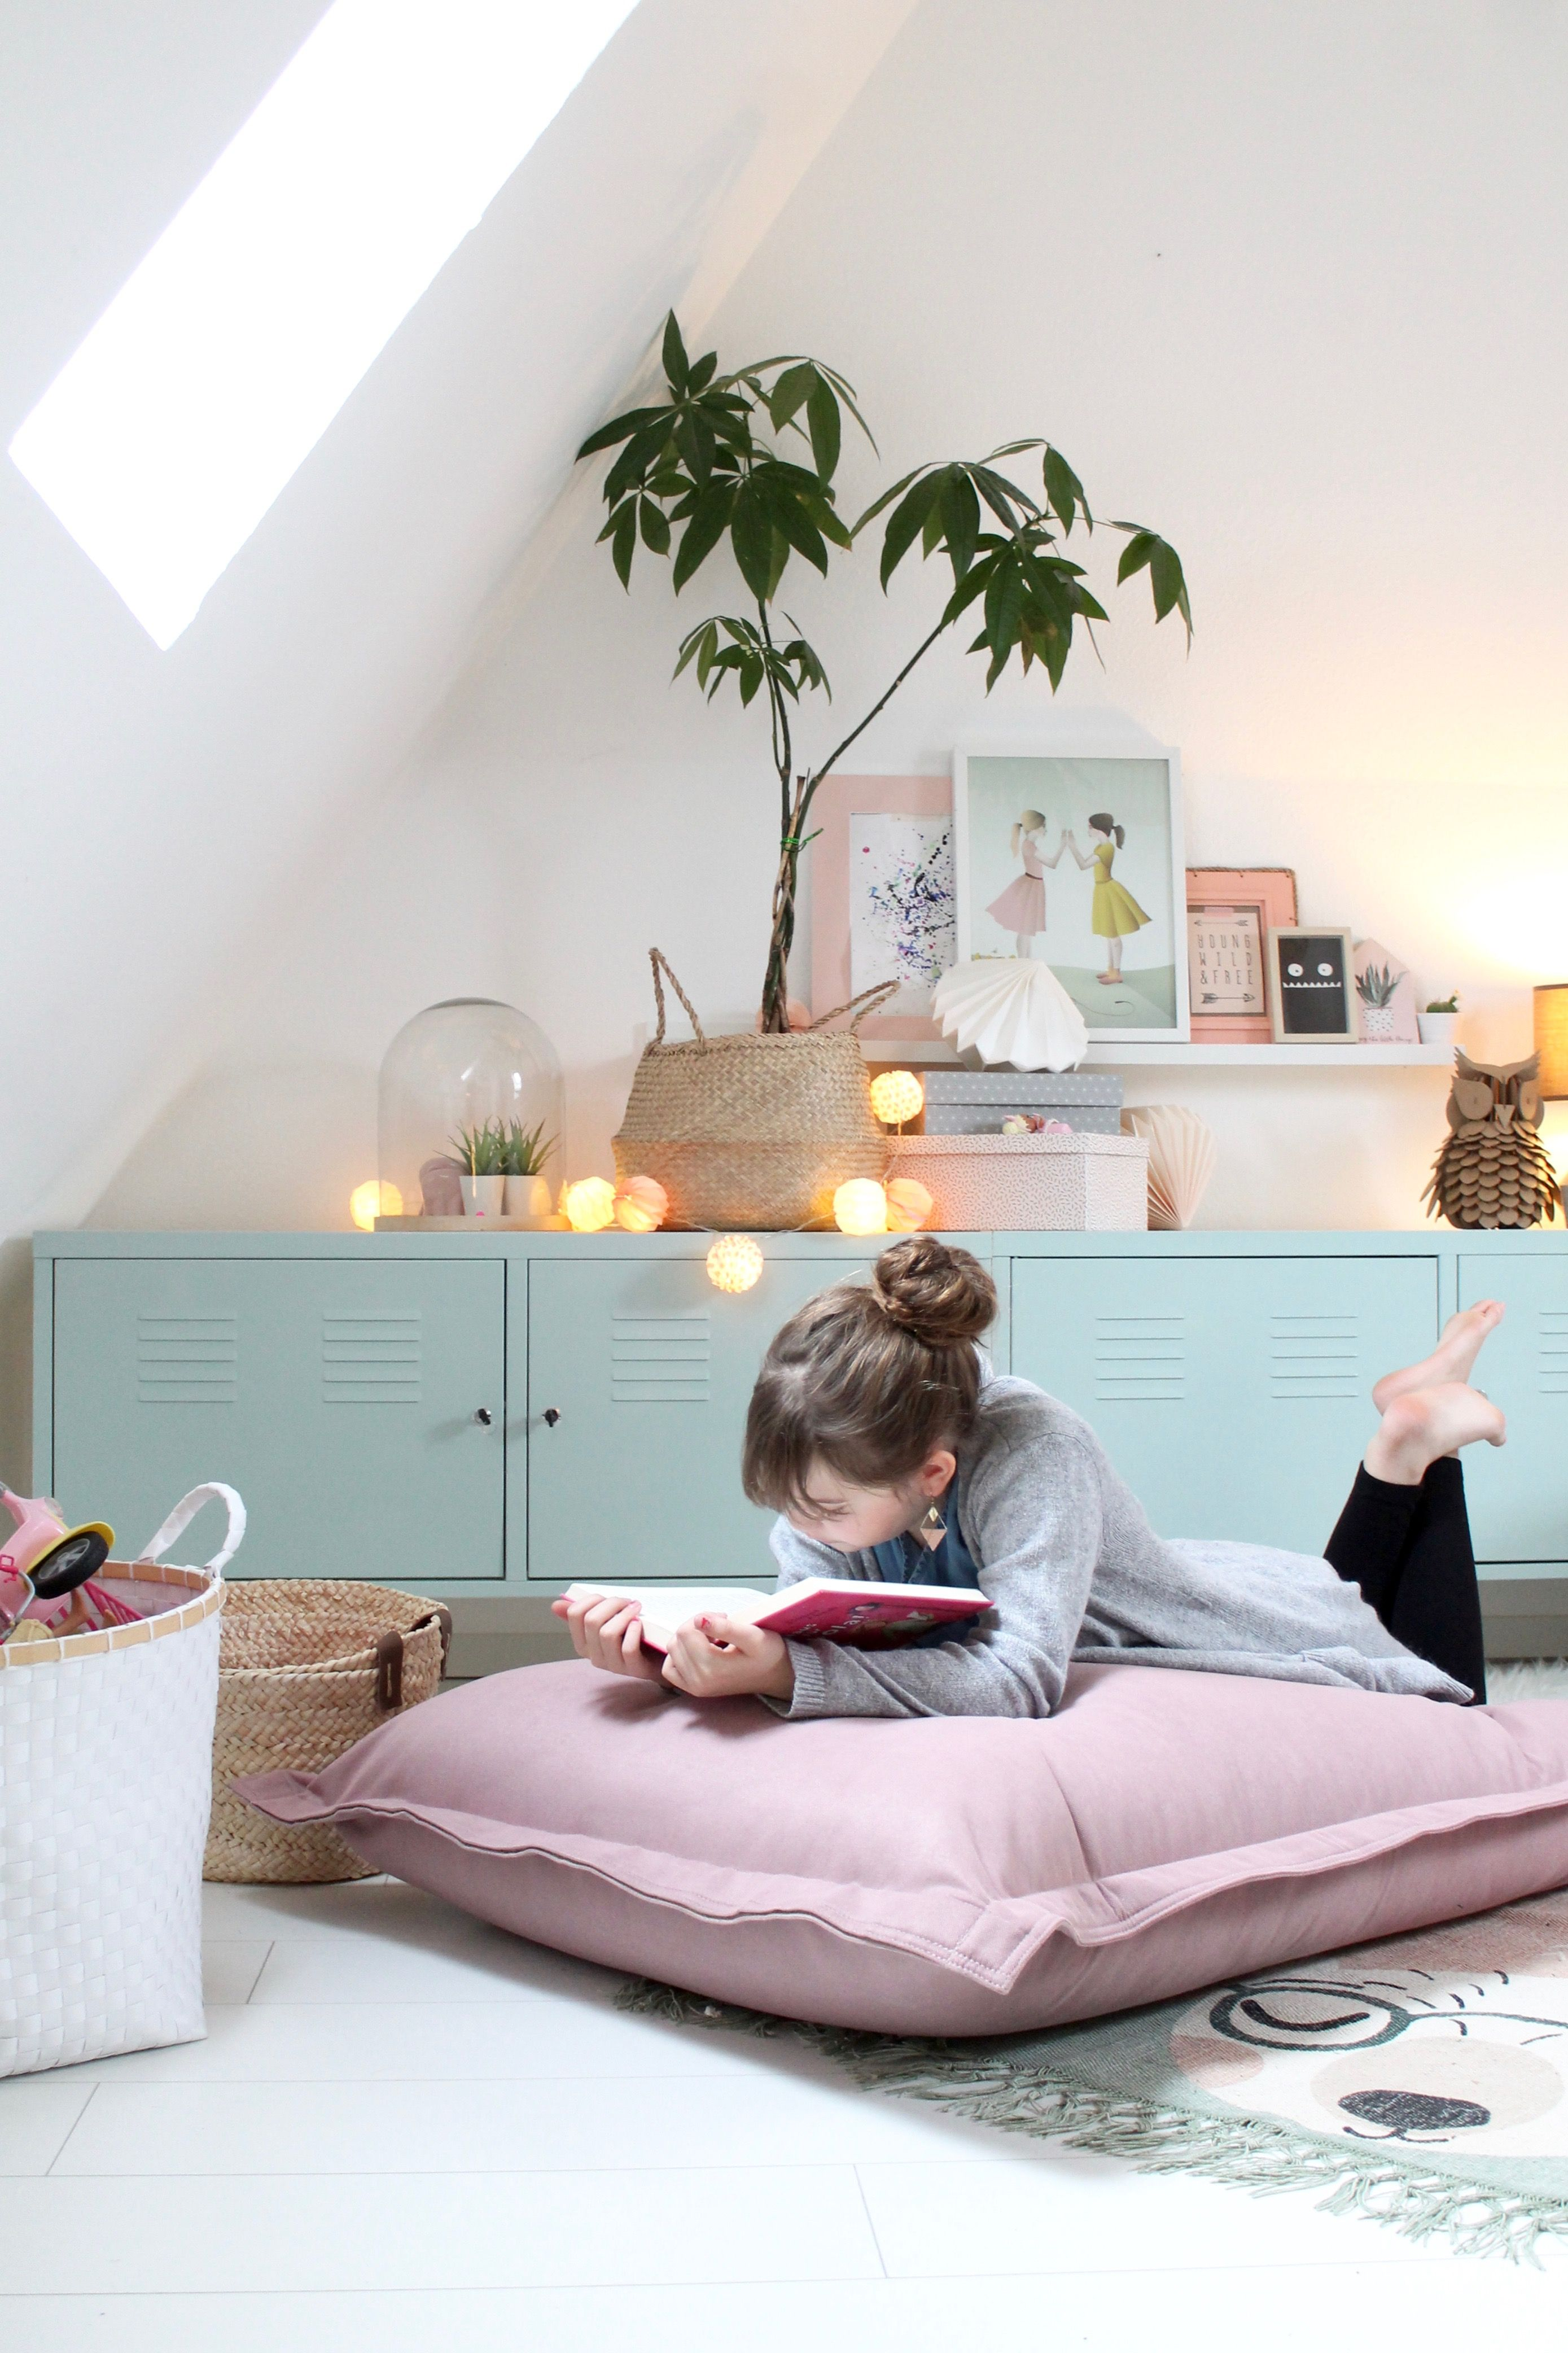 Home - Britta Bloggt #kidsrooms